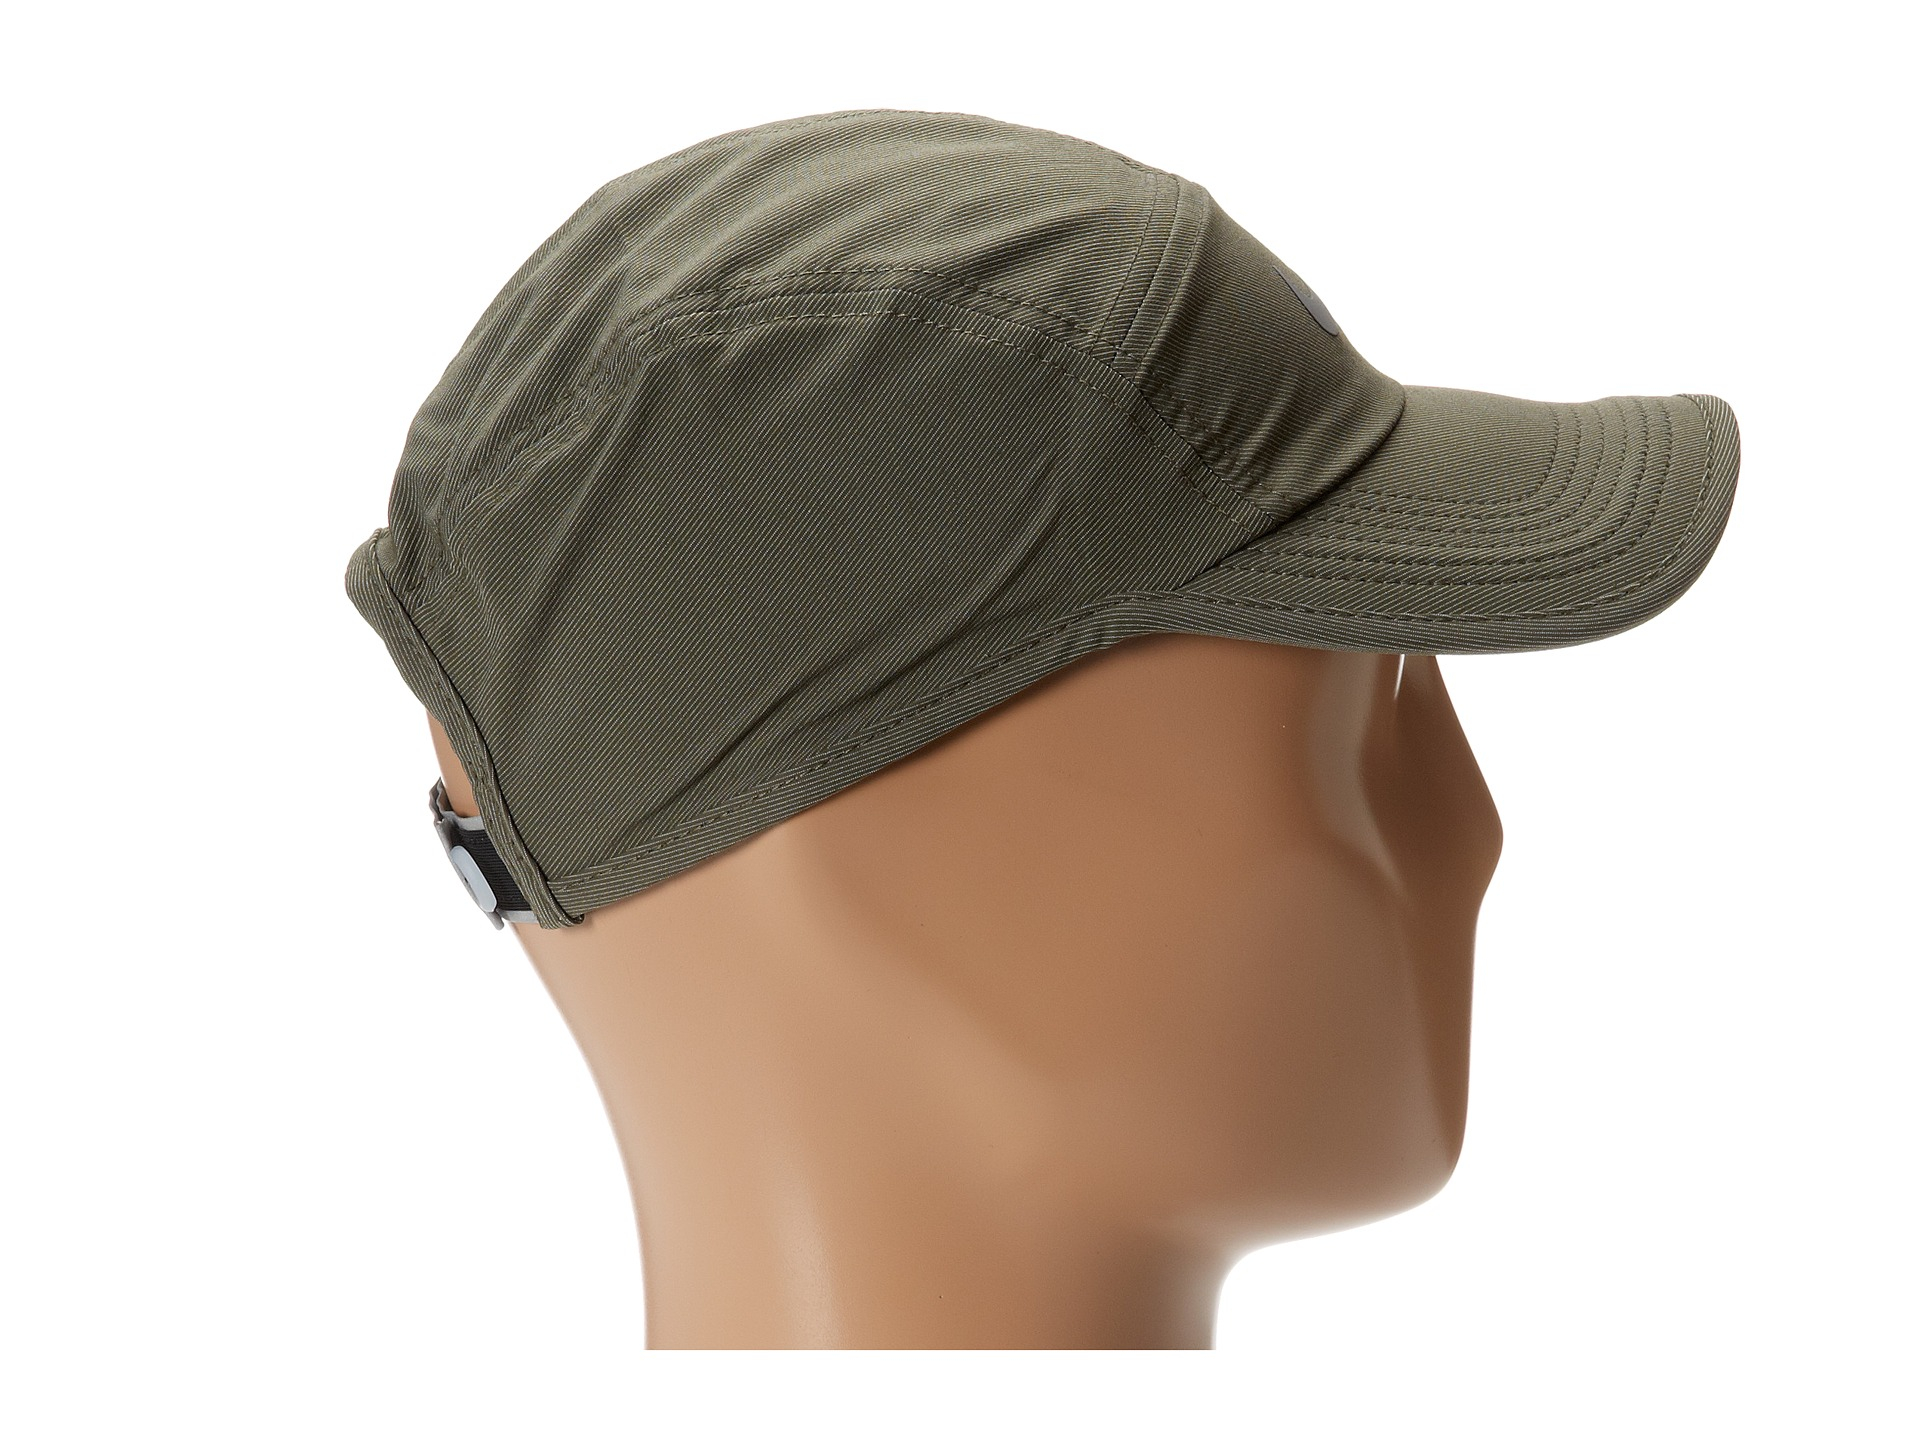 18fe7ac6 Nike Aw84 Cap in Natural - Lyst